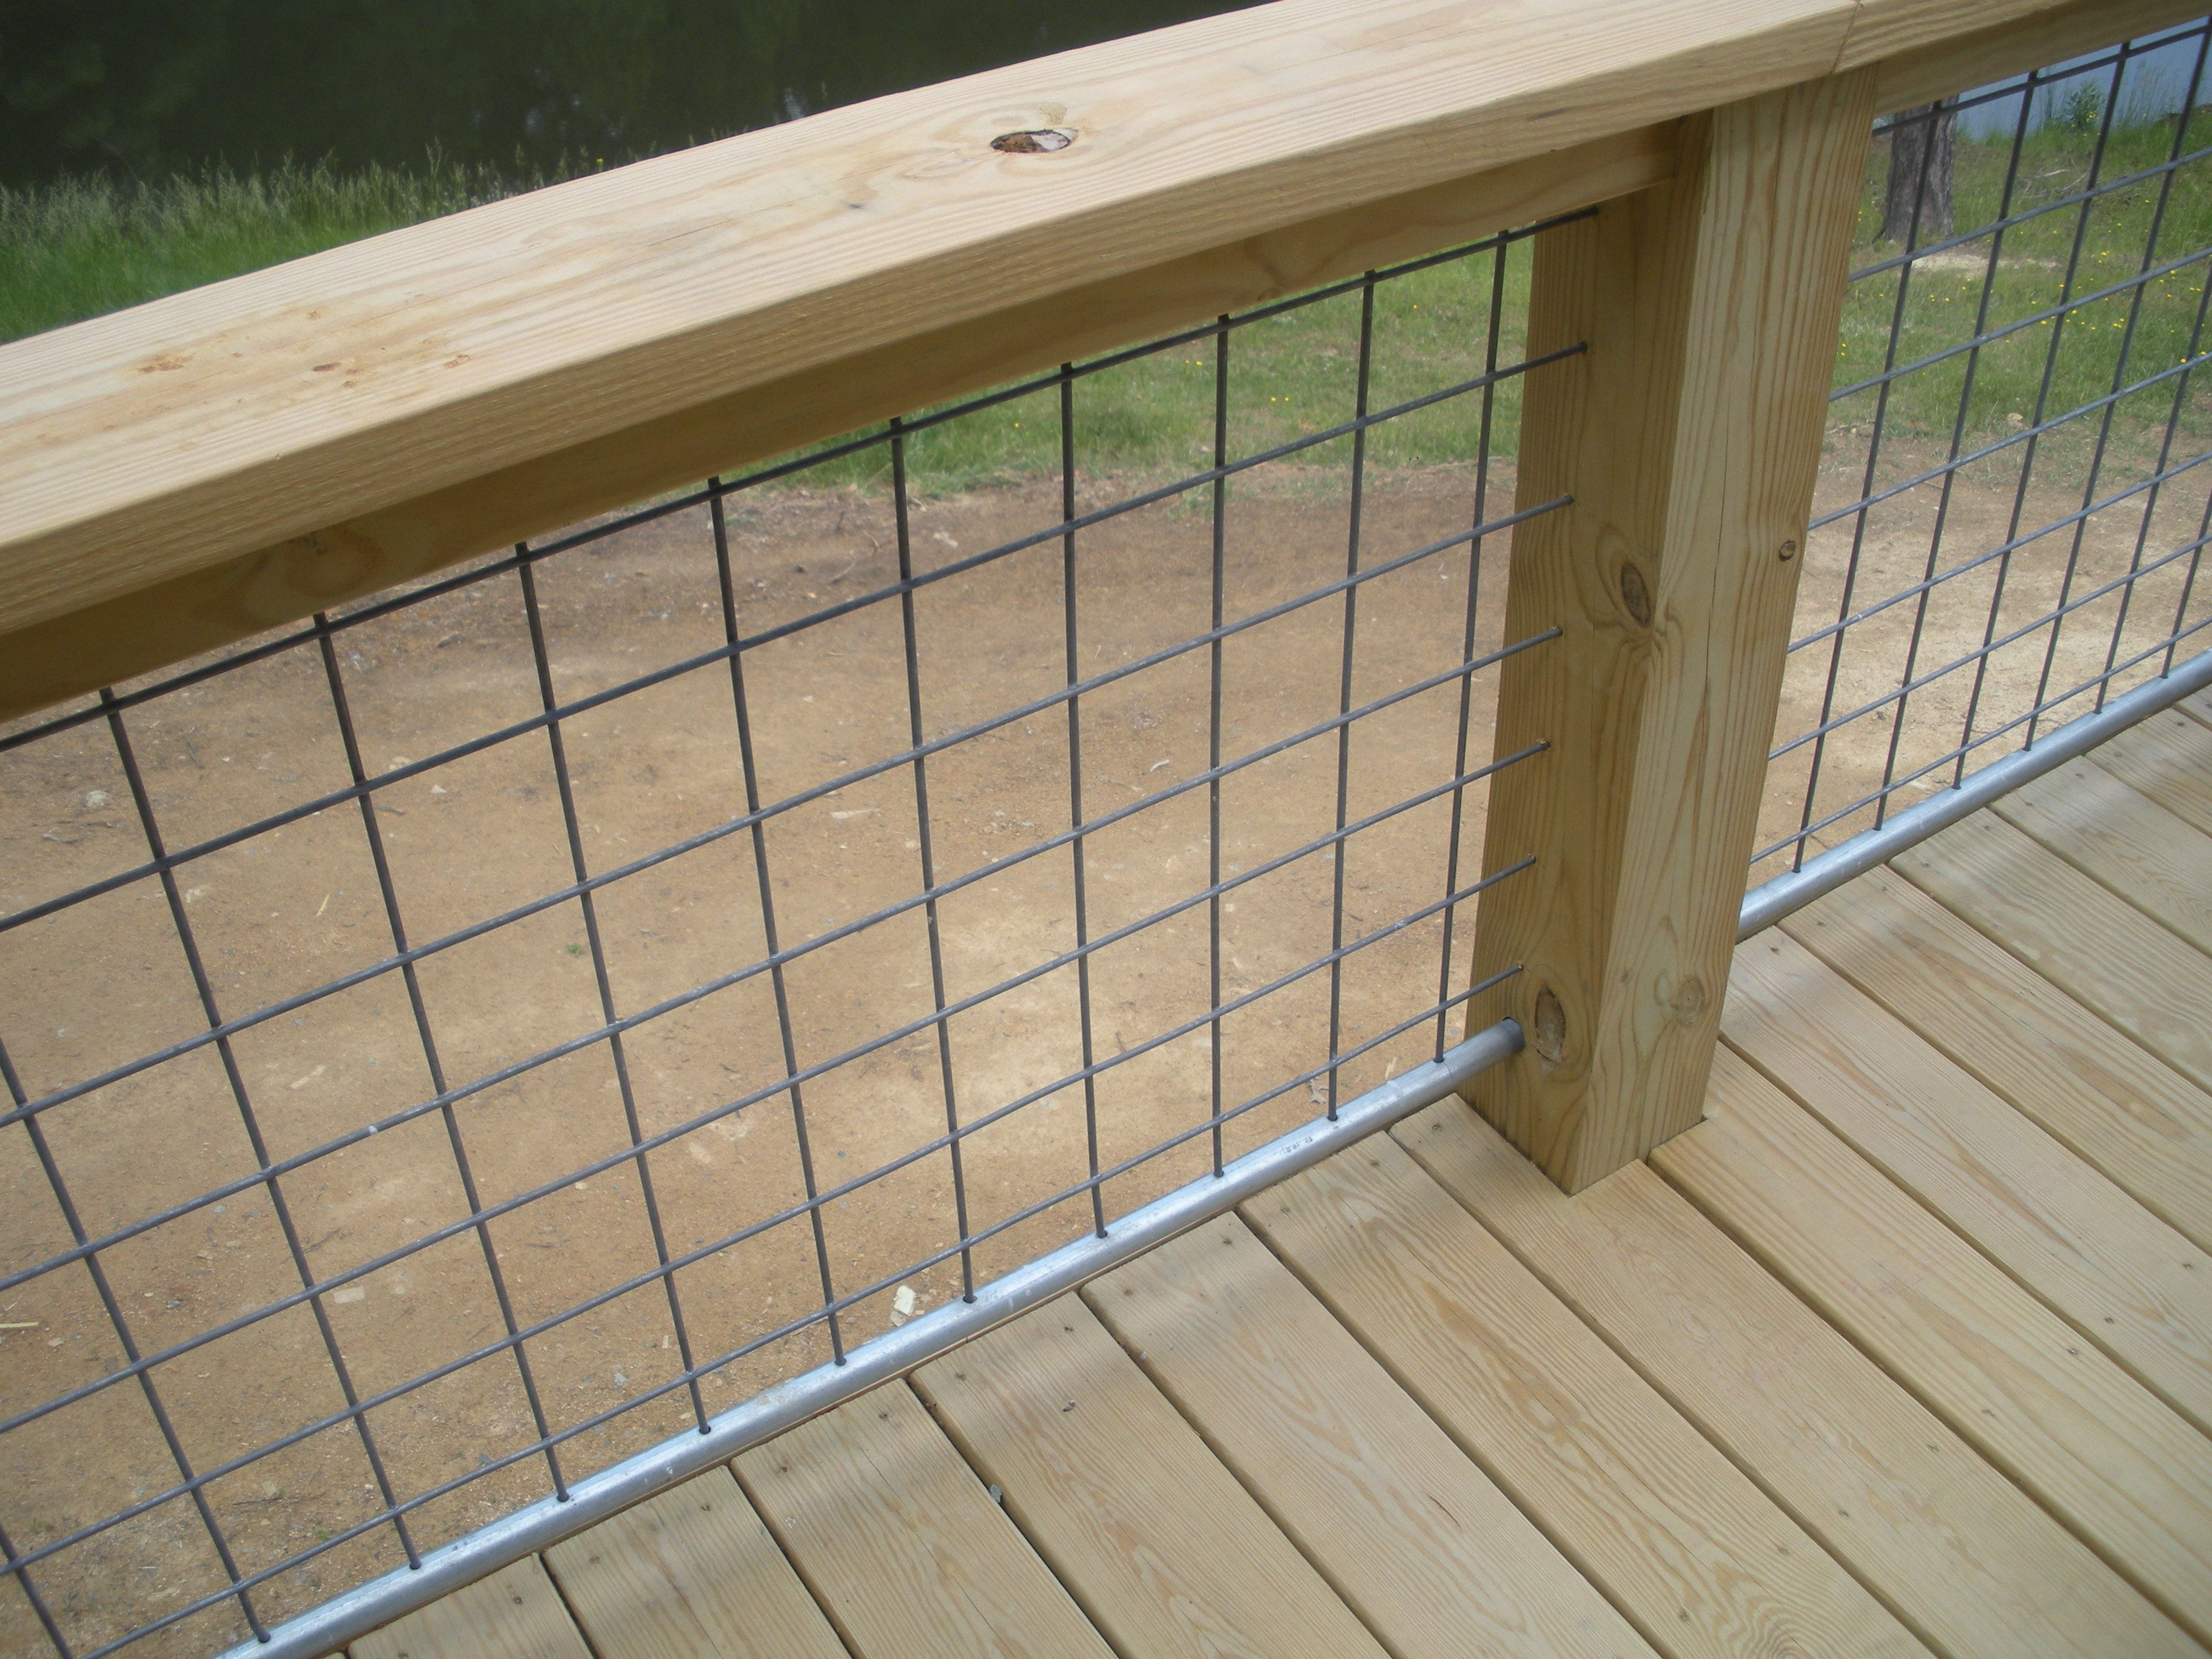 goat wire fencing as railings - Google Search | Cabin | Pinterest ...